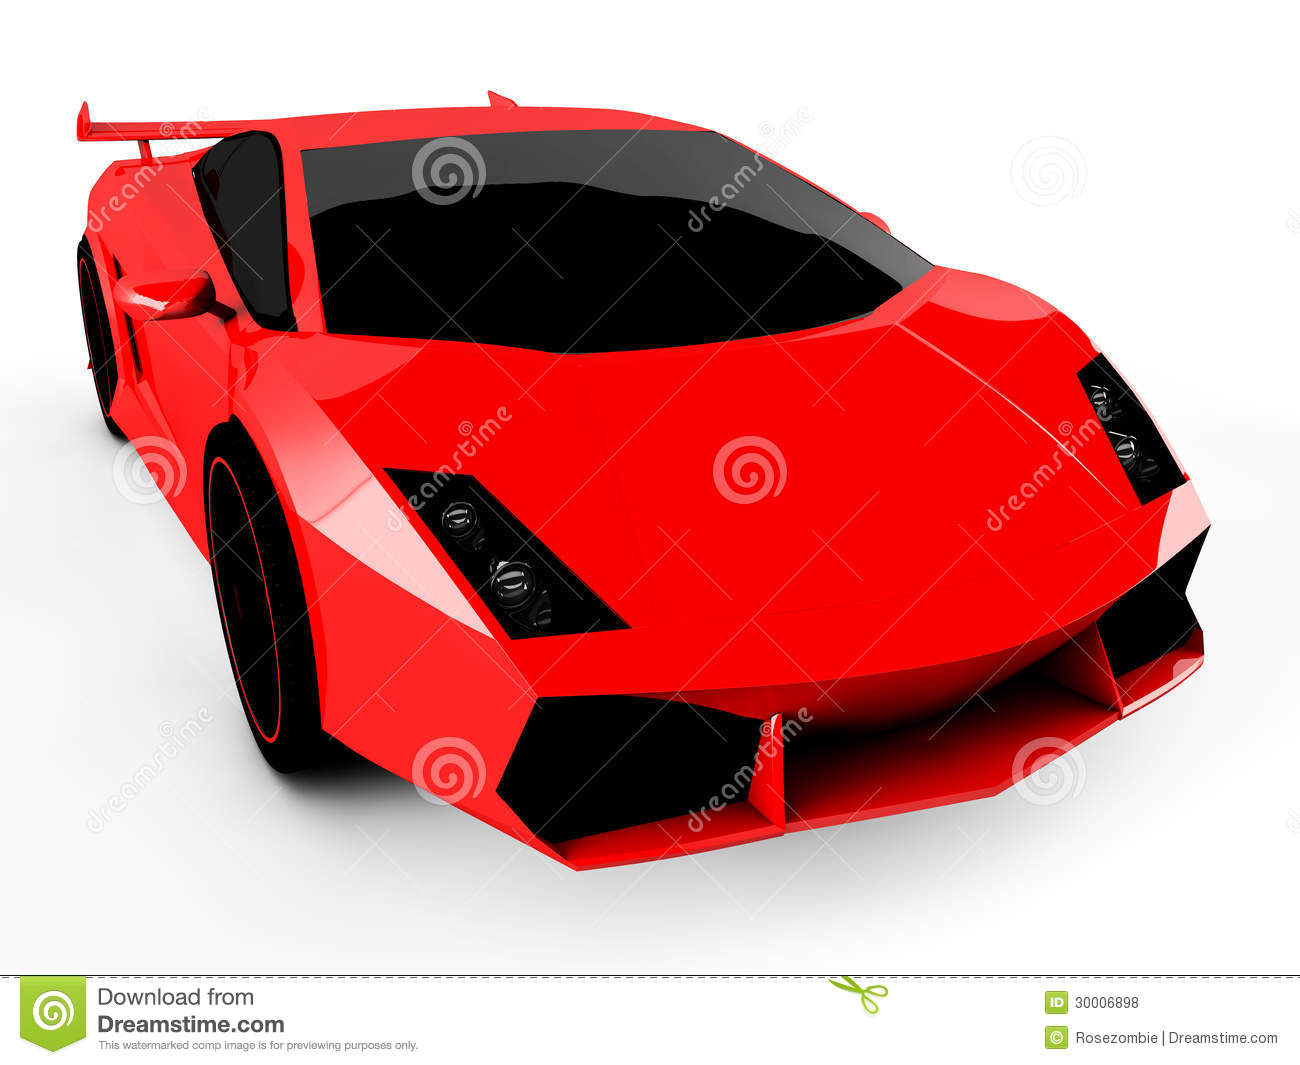 Red Sports Car On White Background Stock Illustration - Red sports car